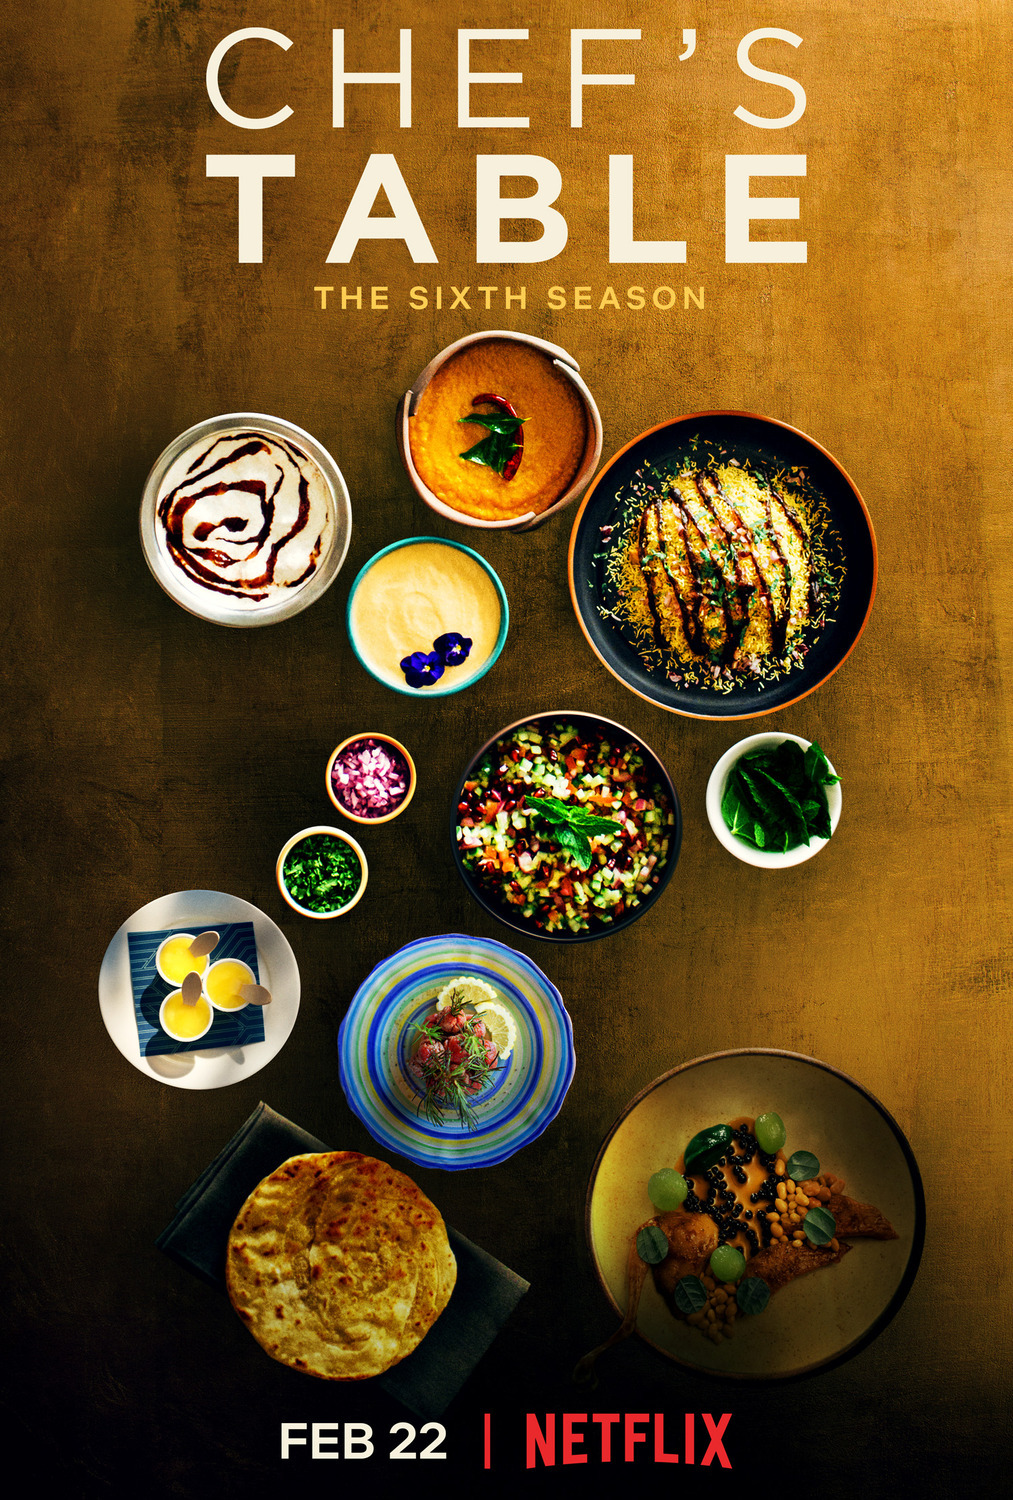 Chef's Table - A true work of cinematic and culinary art profiling some of the most creative and accomplished chefs in the world. The stories are beautiful and the food is unlike anything you've seen or tasted before! I'd love to visit every restaurant on this show one day.So far I'm 0 for 0 but HEY, a girl can d r e a m.